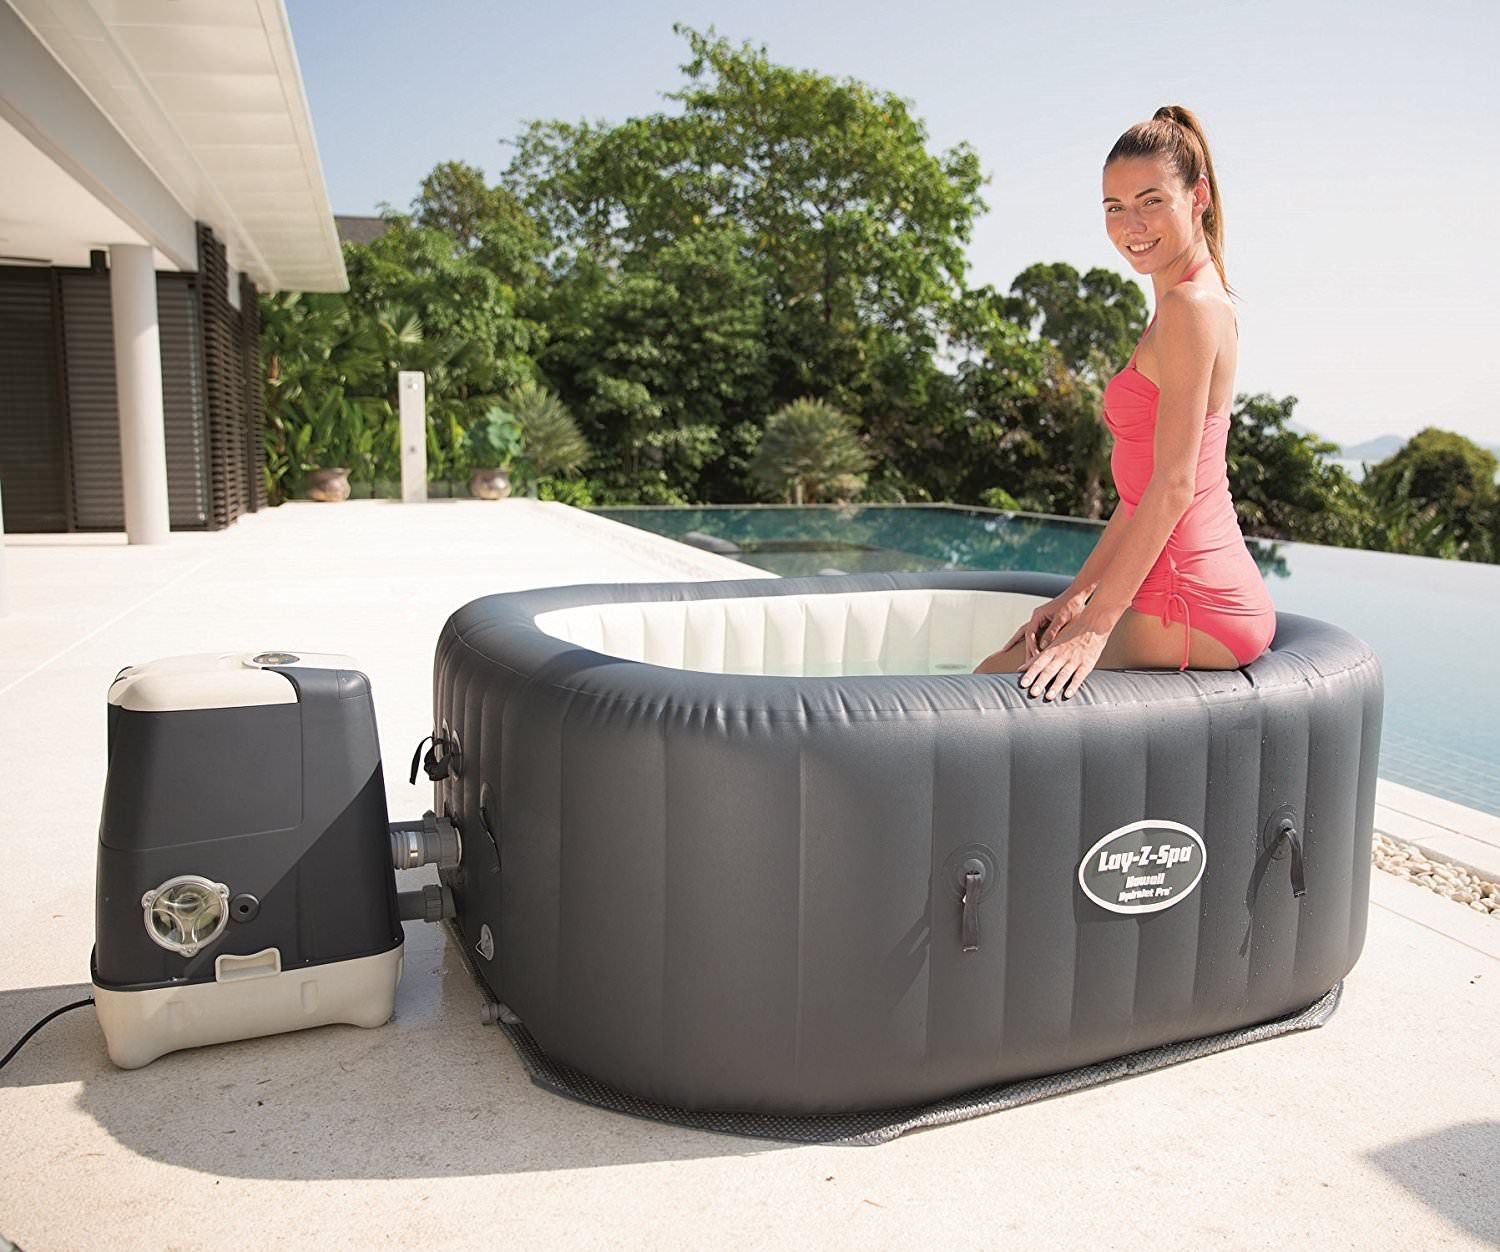 Inflatable Spas and Portable Hot Tubs Are the Best Products for Both Your Home and Your Health